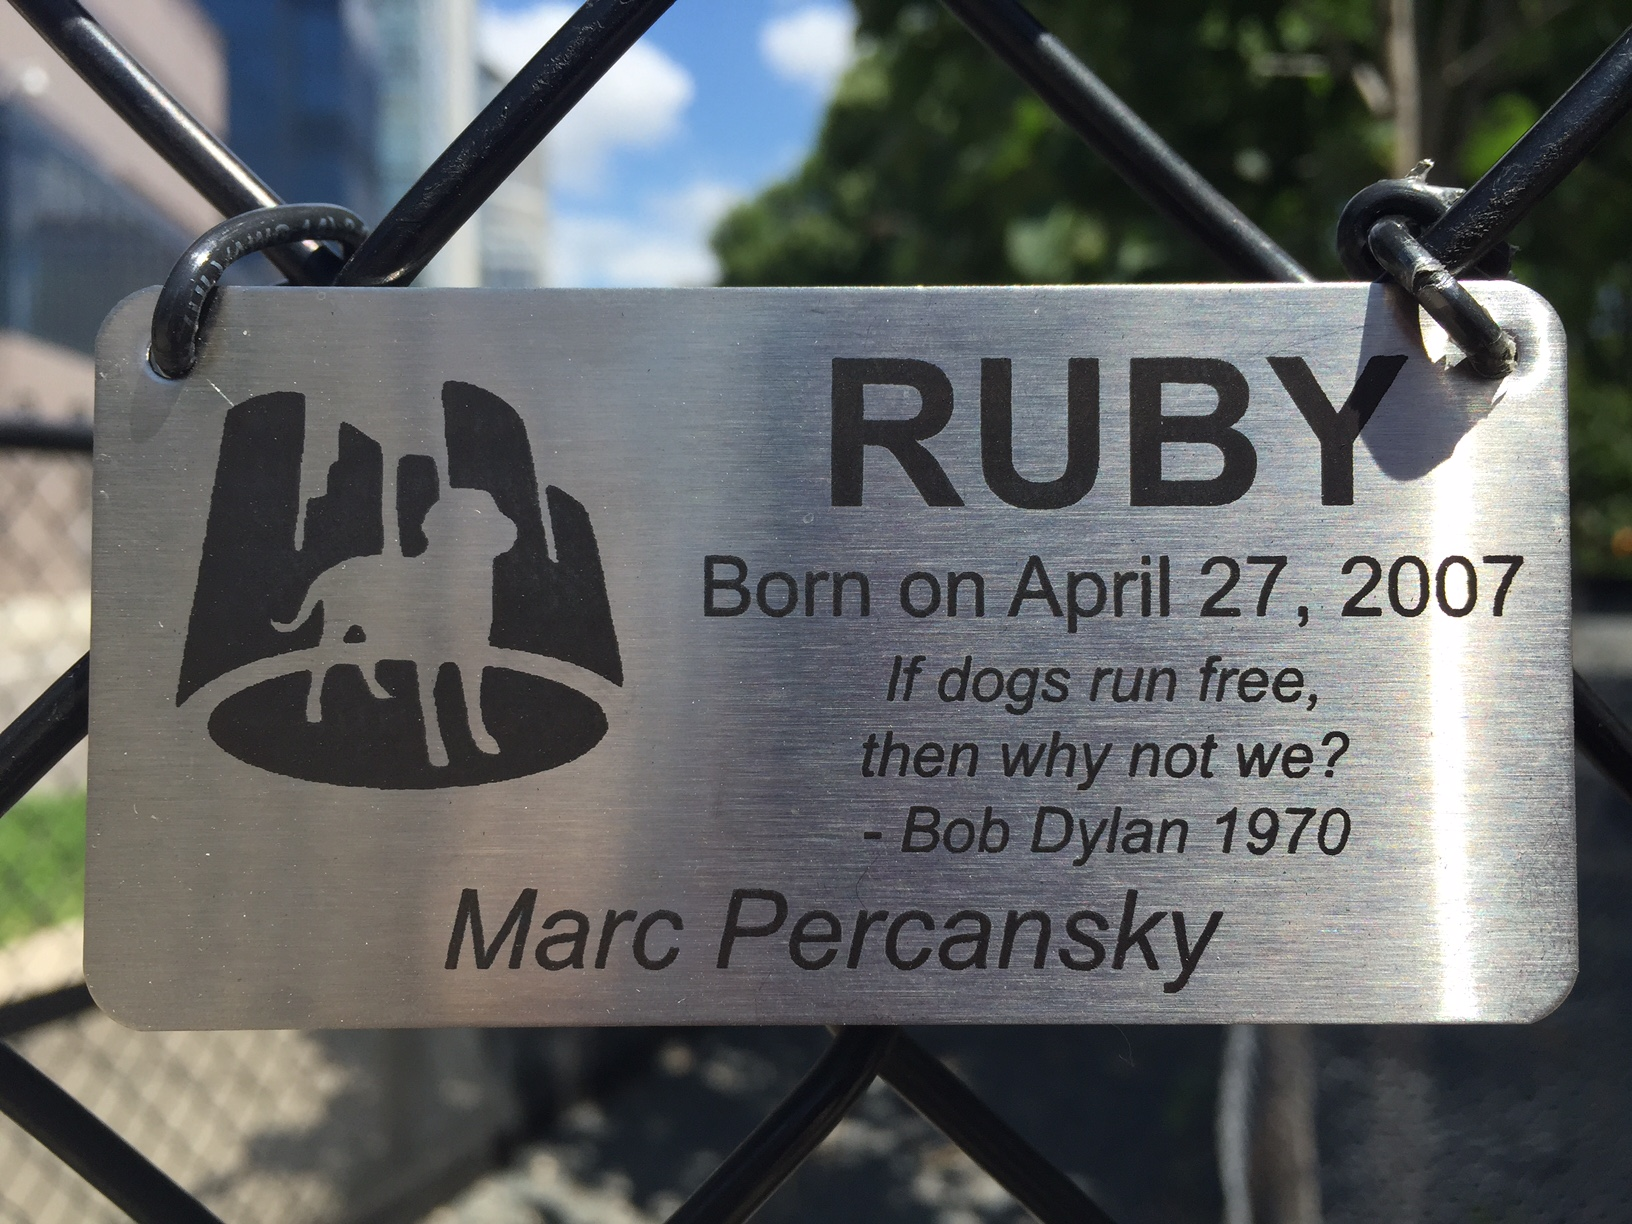 RUBY'S Dog Silhouette Stainless Steel Plaque / Gateway Dog Park / Minneapolis, Minnesota / July 22nd, 2015